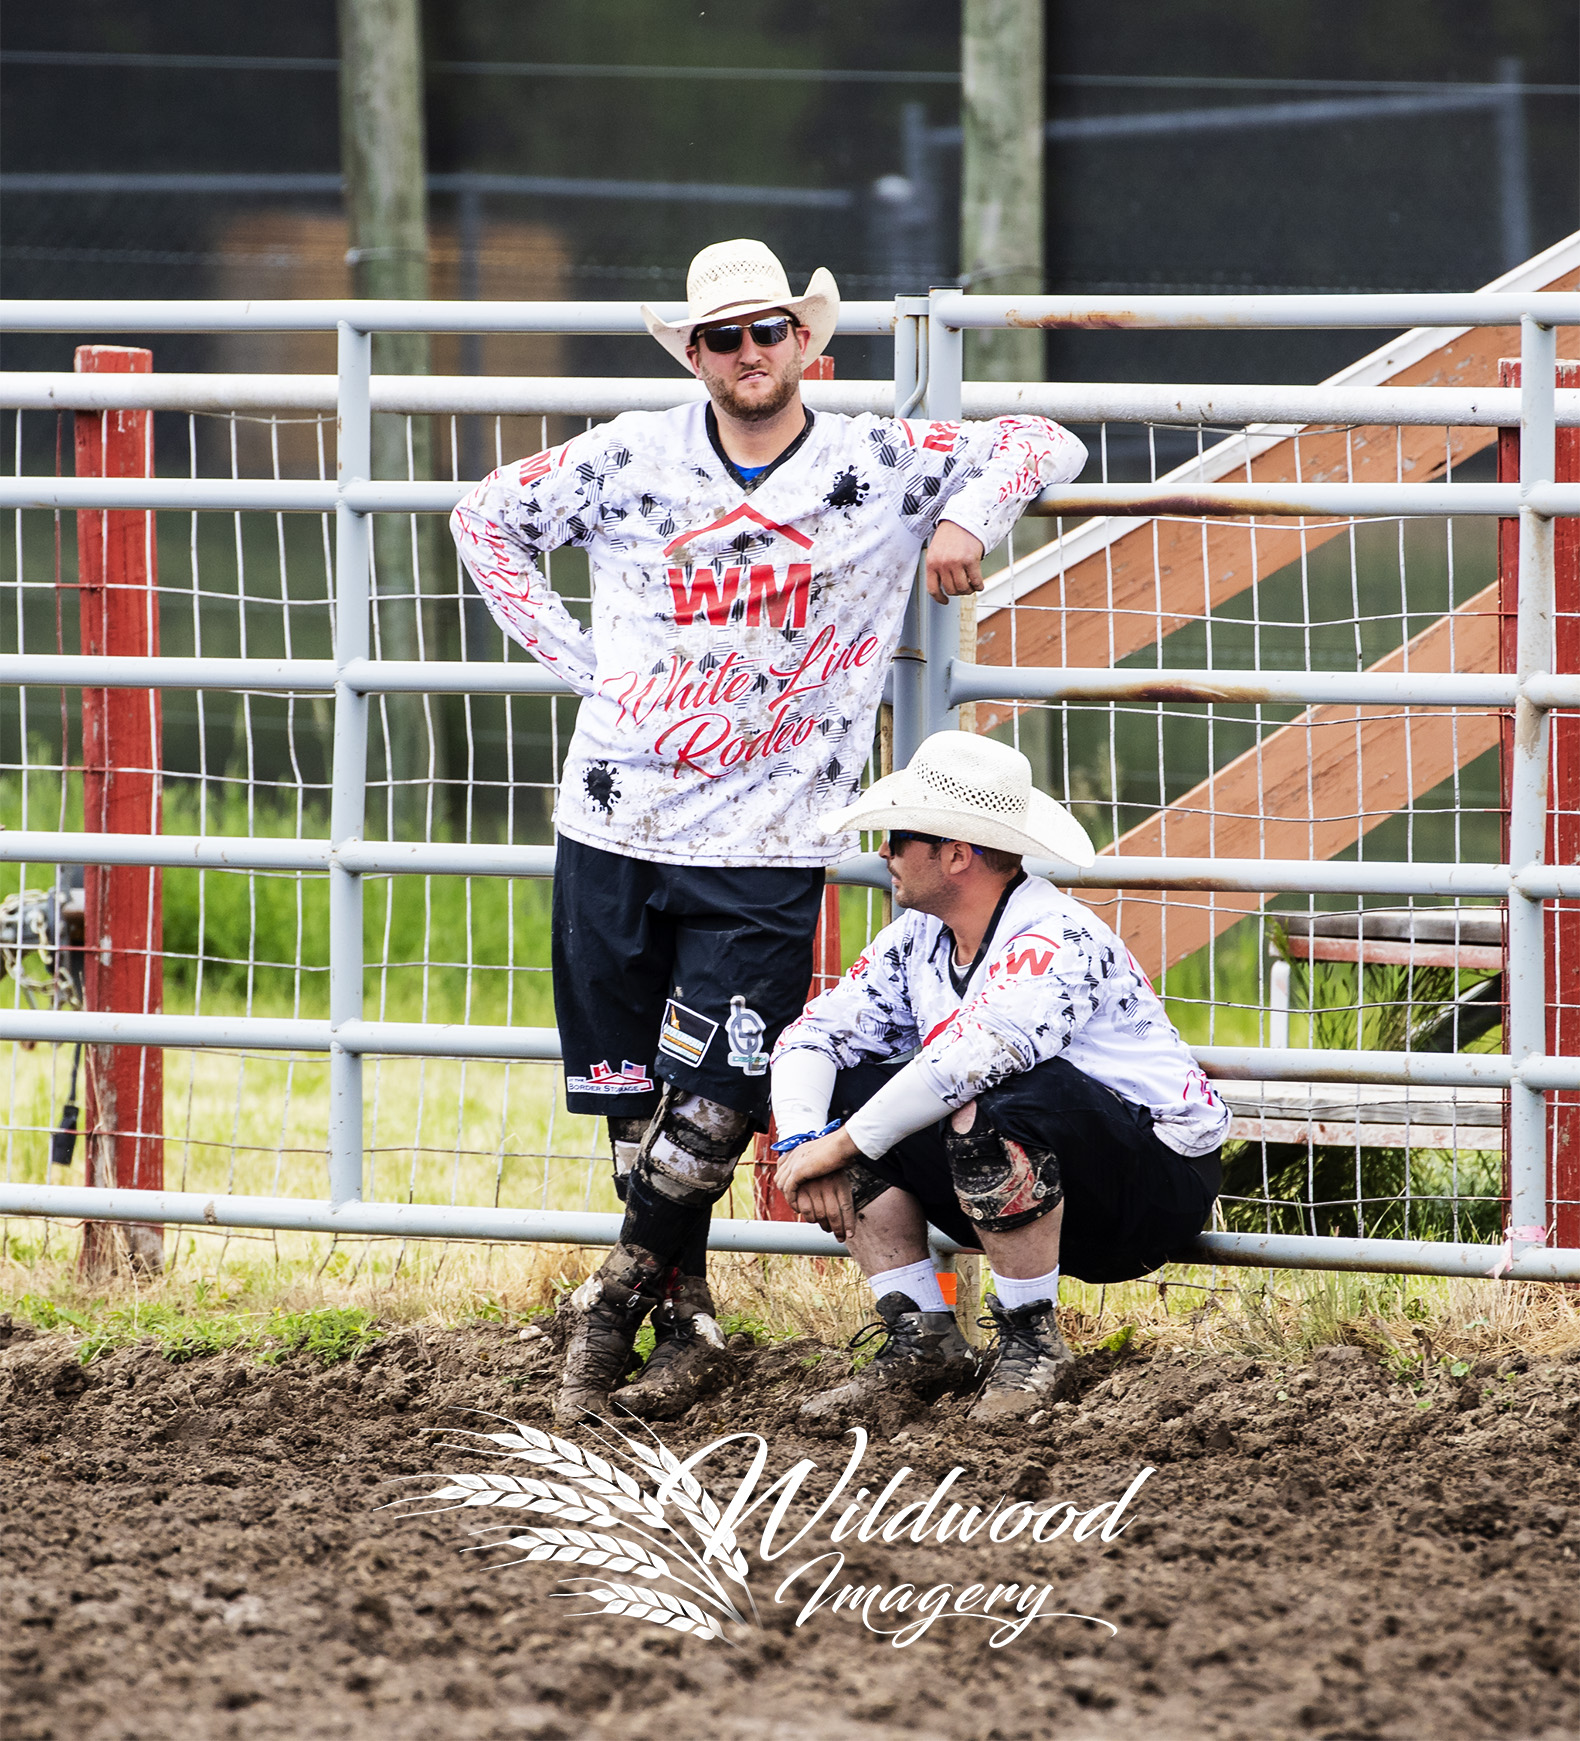 LOGAN HOFER competing at the Sun Perf - Couttsgrass Rodeo in Coutts, Alberta, Canada on June 17, 2018. Photo taken by Wildwood Imagery / Chantelle Bowman.